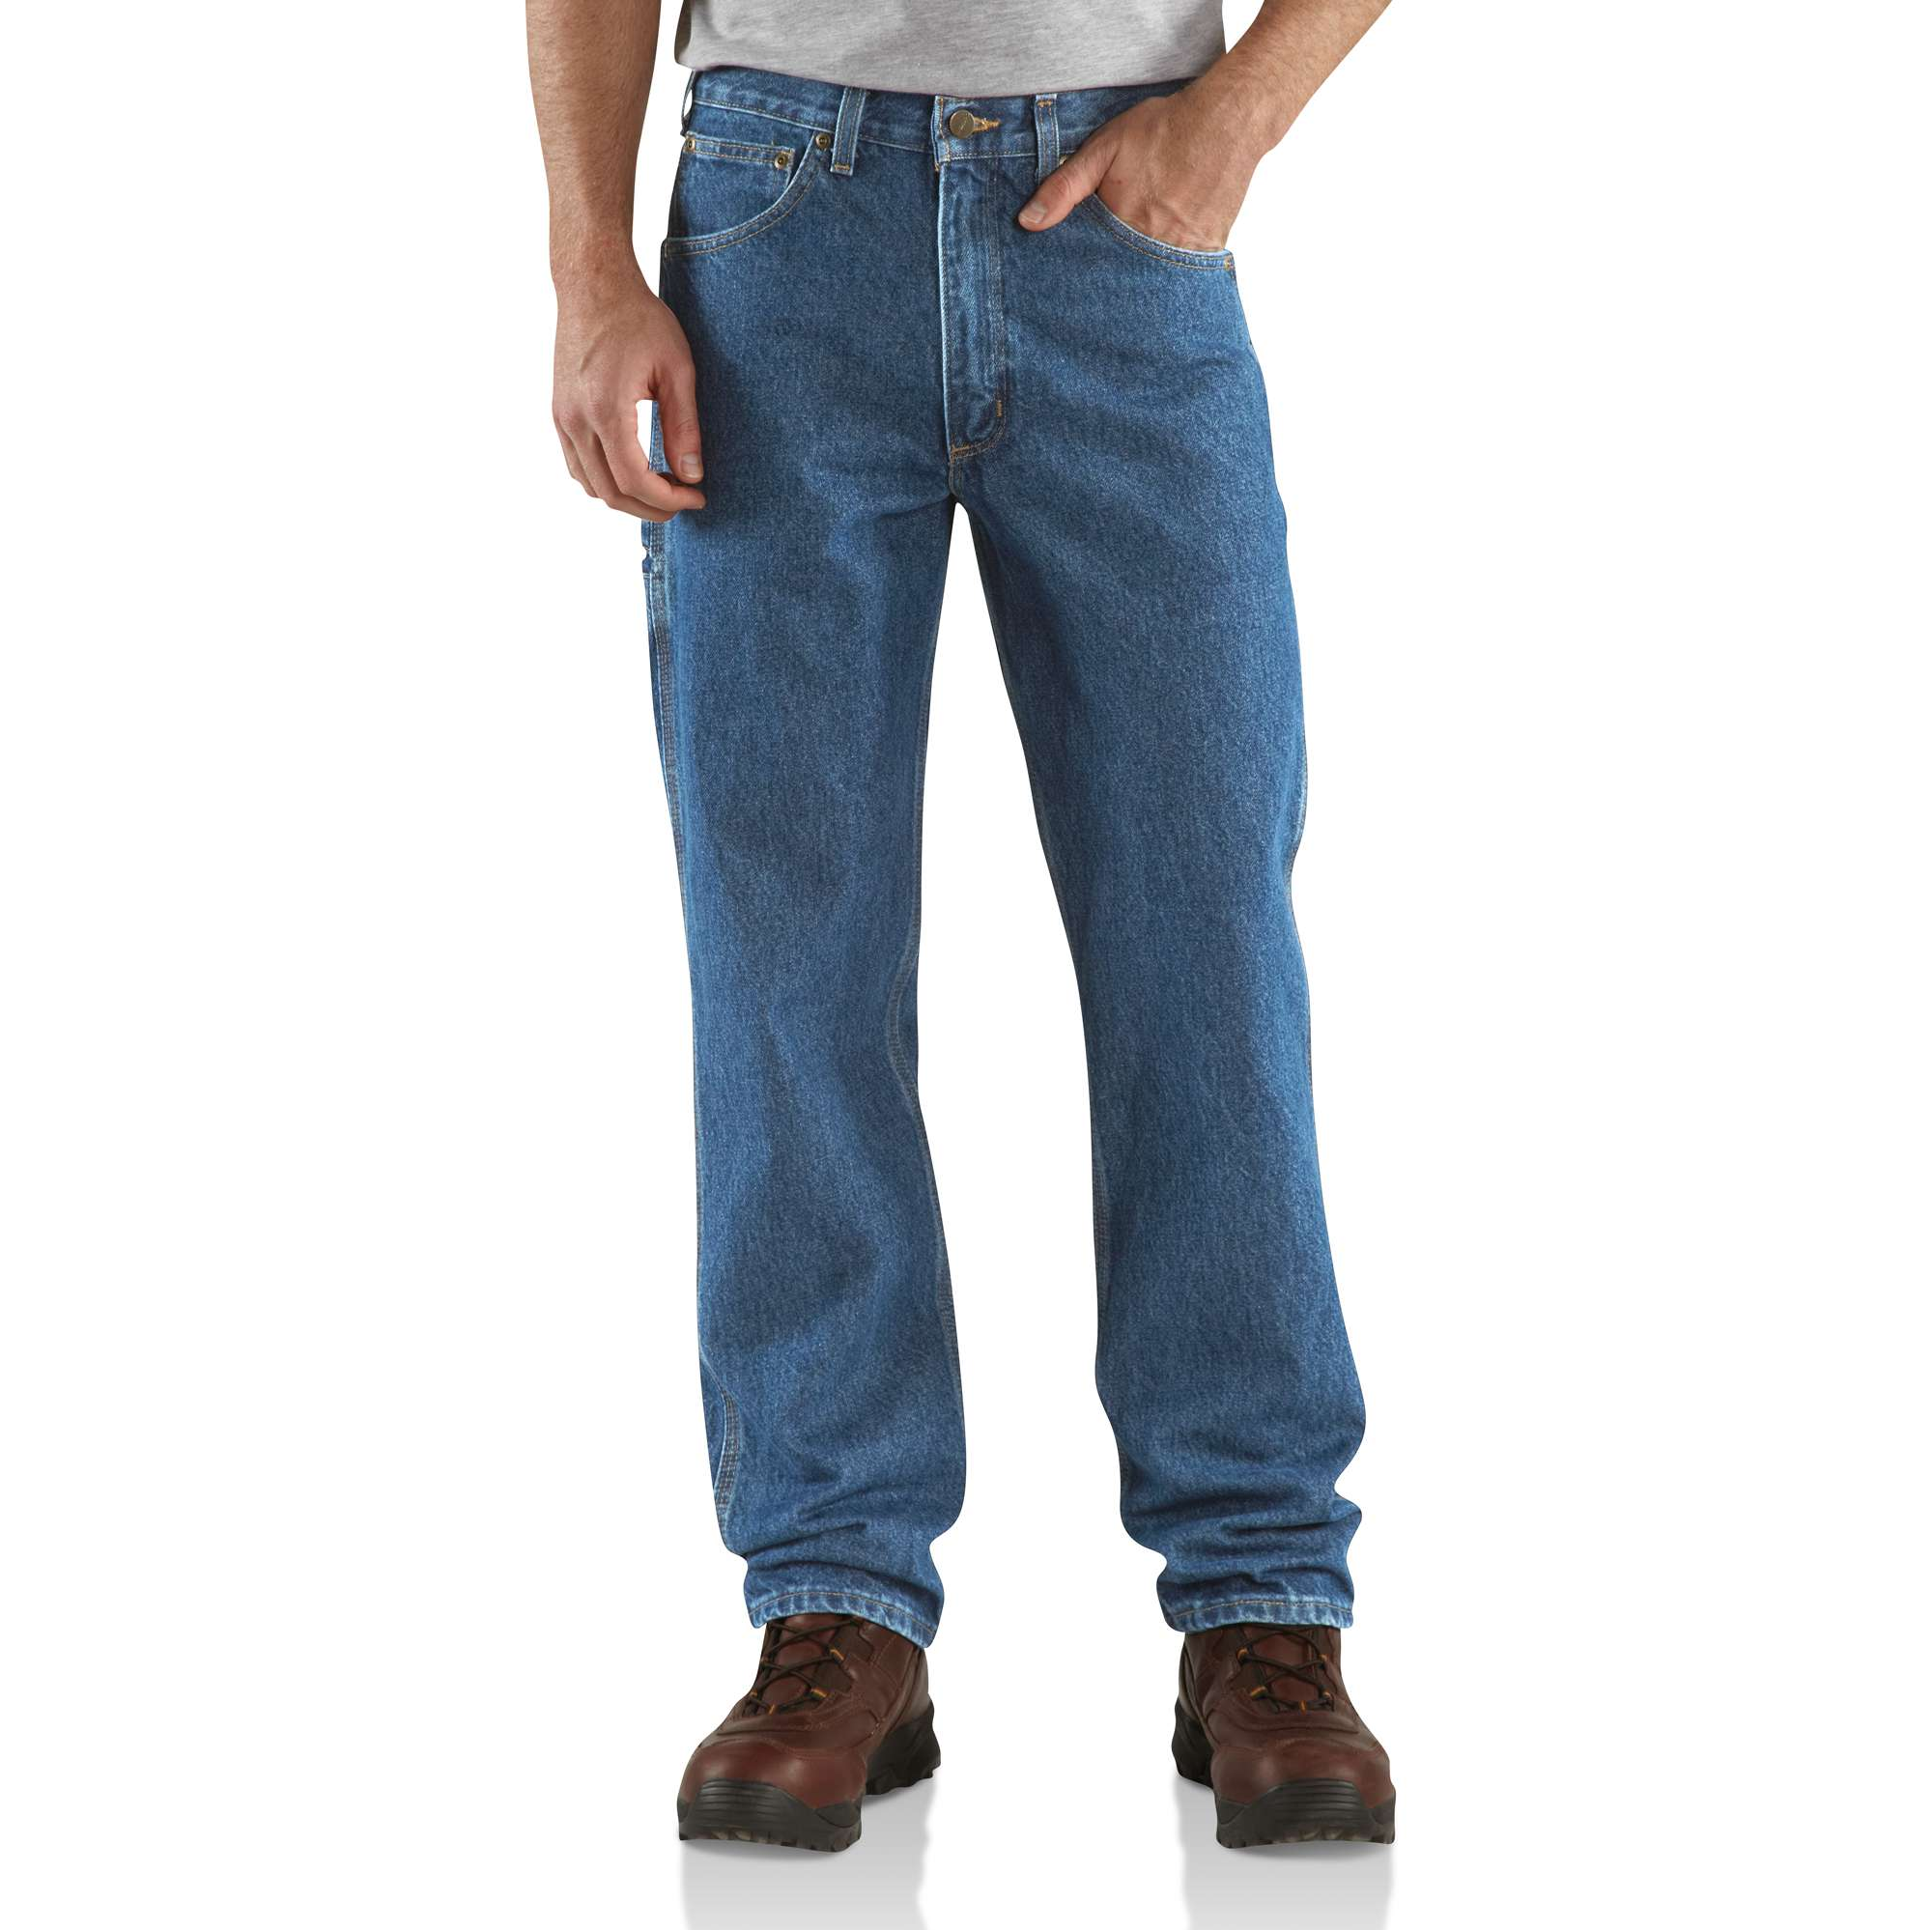 Carhartt Relaxed-fit Carpenter Jean